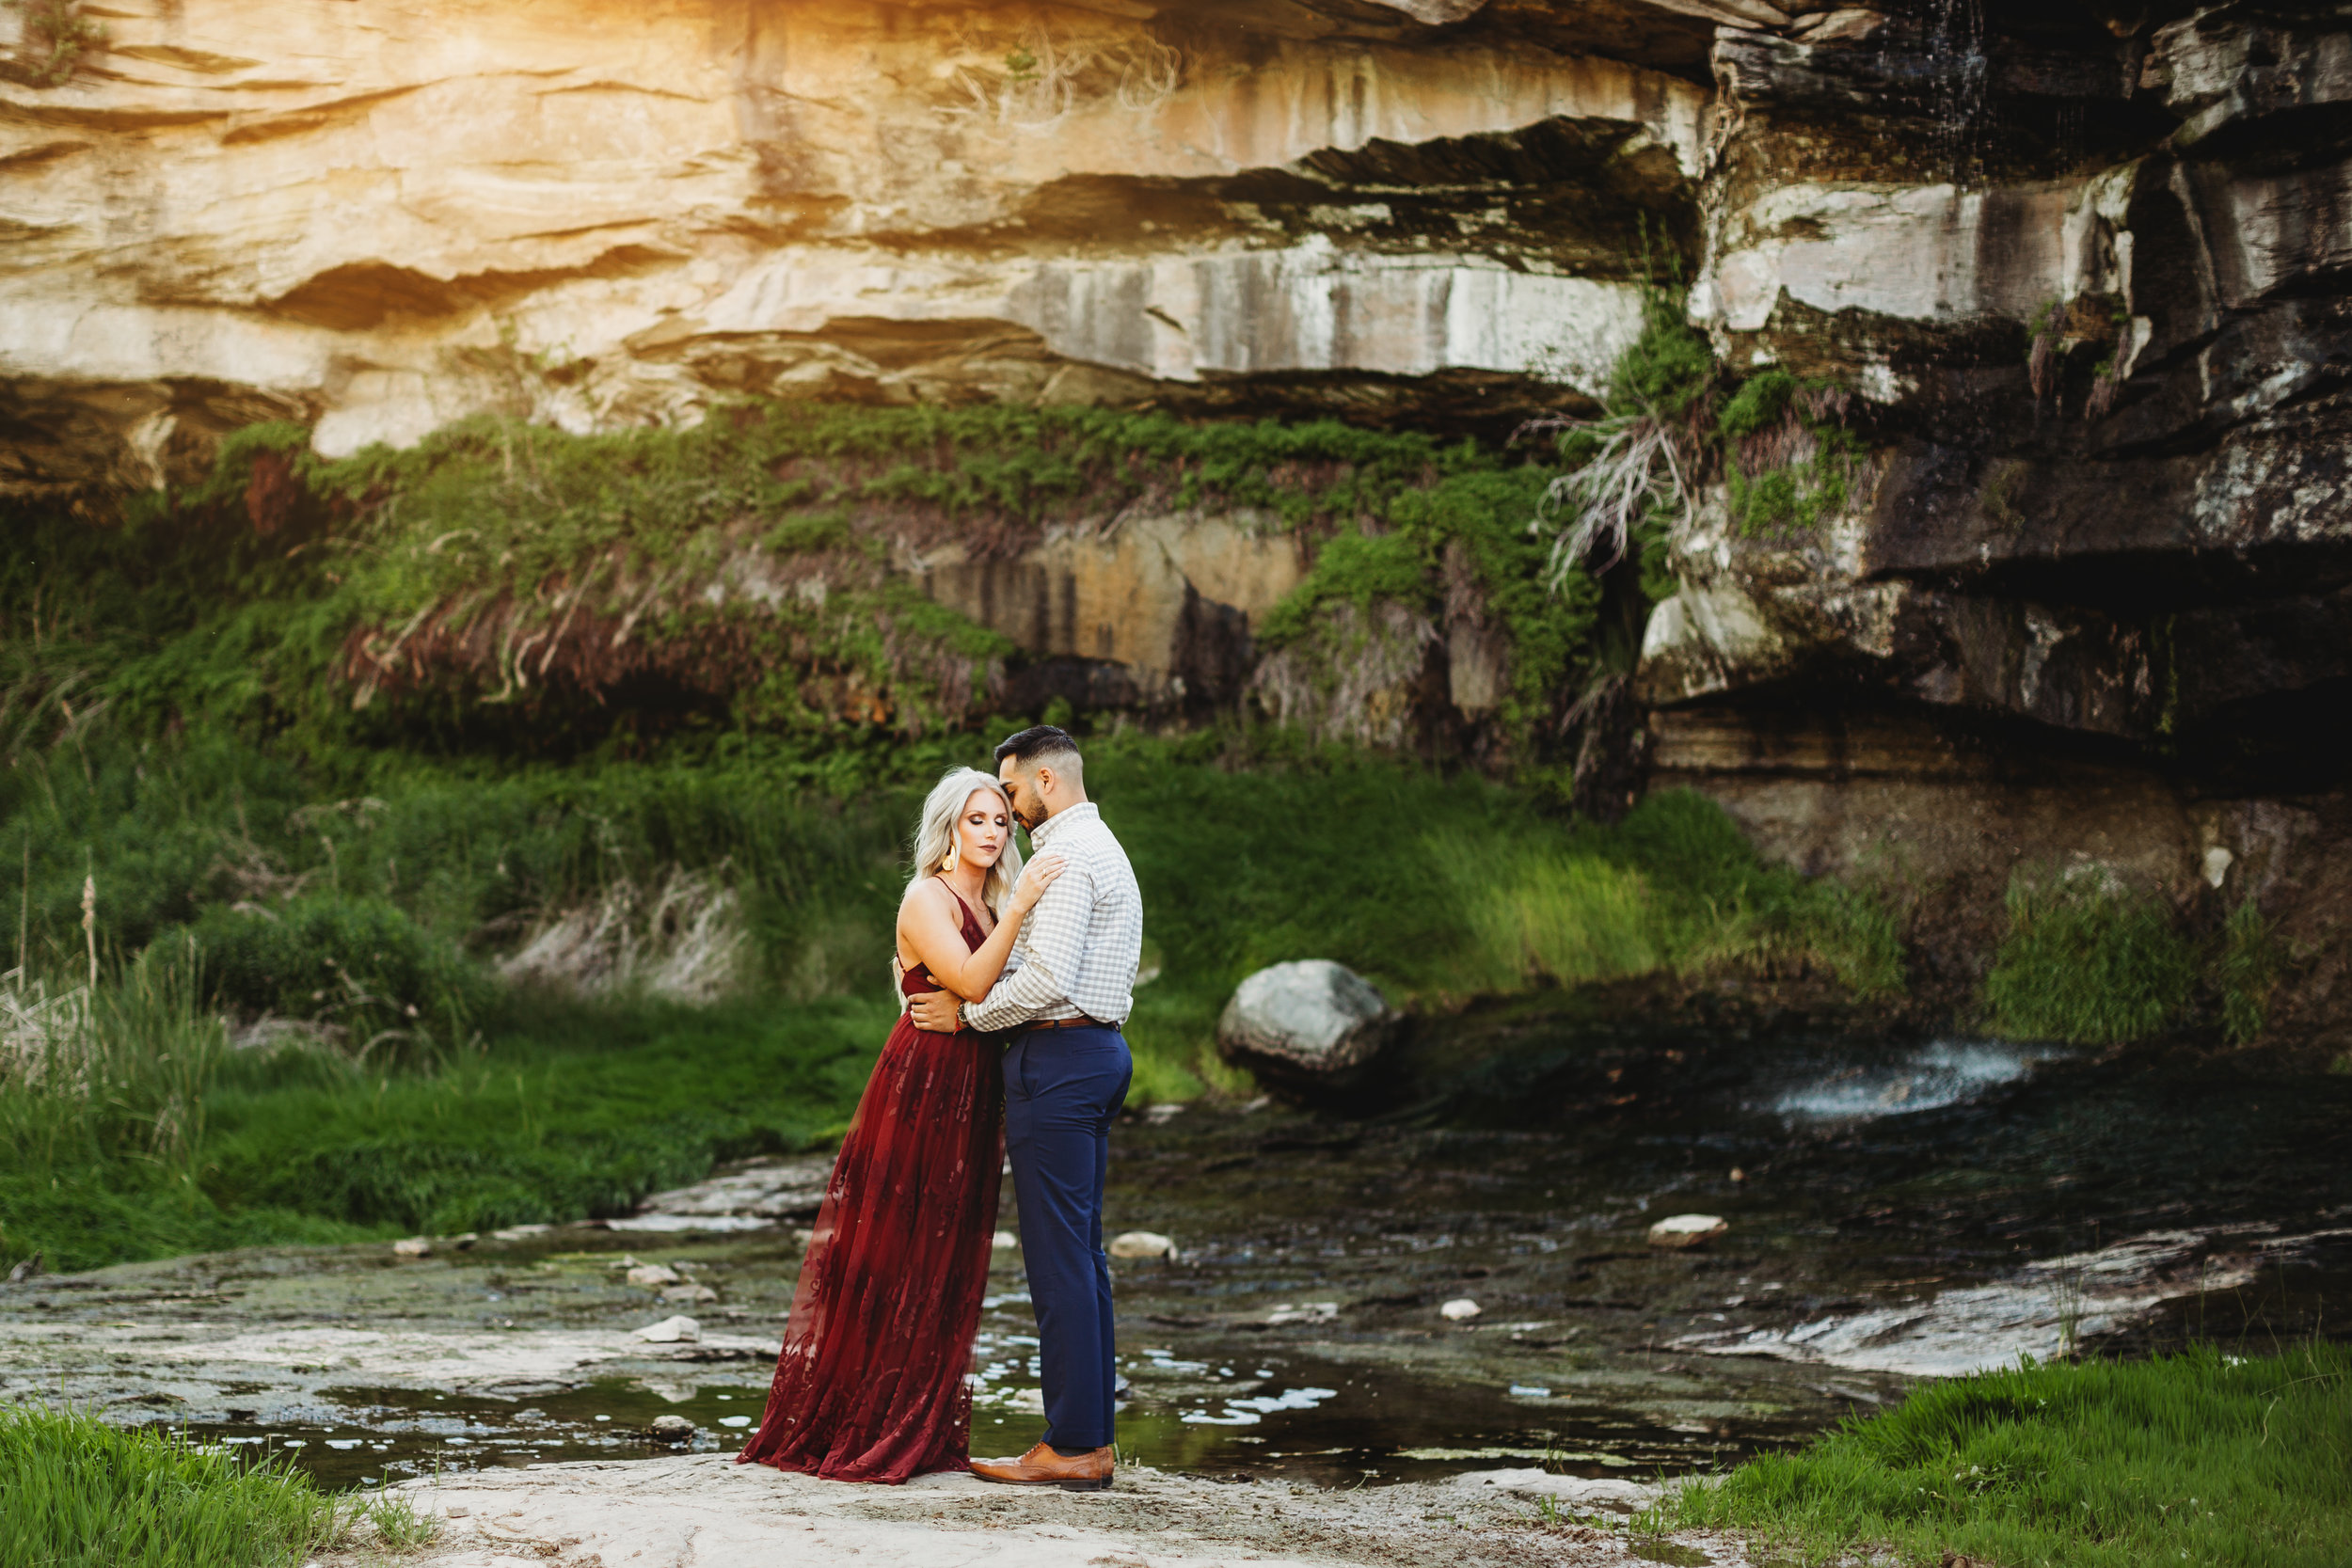 Wildlife refuge with greenery in gorge and engaged couple standing in the middle #tealawardphotography #texaslocationchoice #amarillophotographer #amarillofamilyphotographer #emotionalphotography #engagementphotography #couplesphotography #pickingaphotosessionlocation #whatsimportant #everythingtogether #pickingcolorsforphotos #location #photosessionlocation